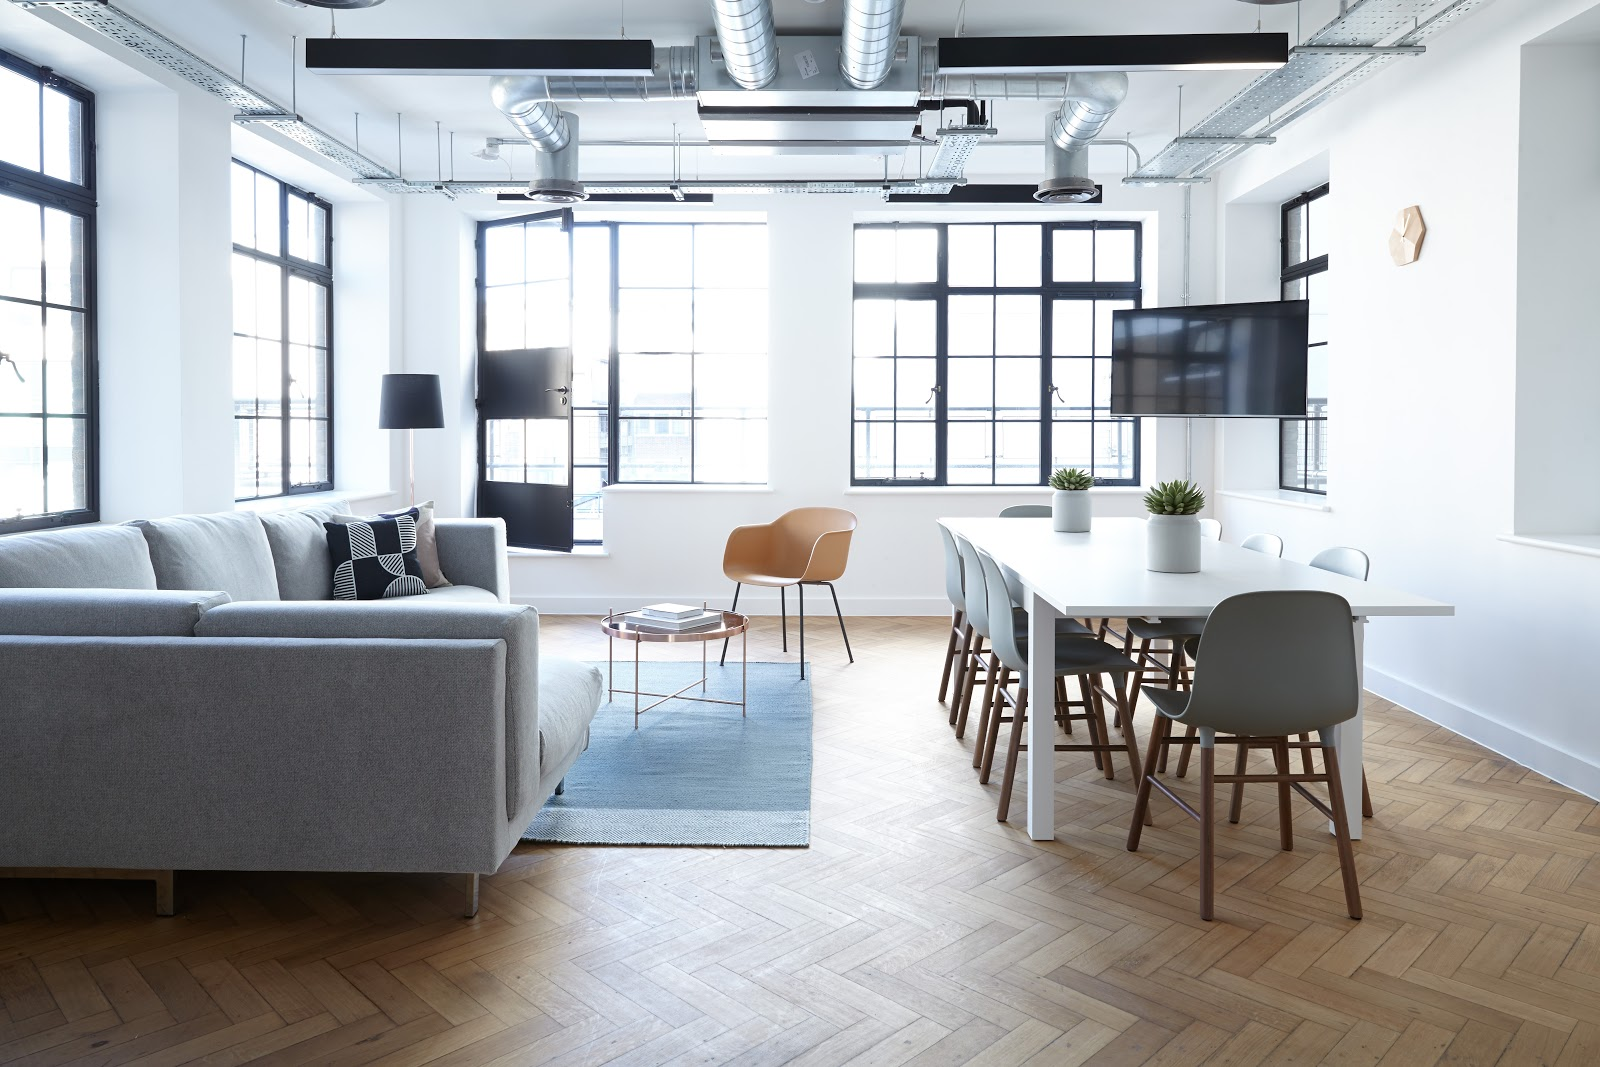 7 Flooring Ideas You Can Do For Your Home Office